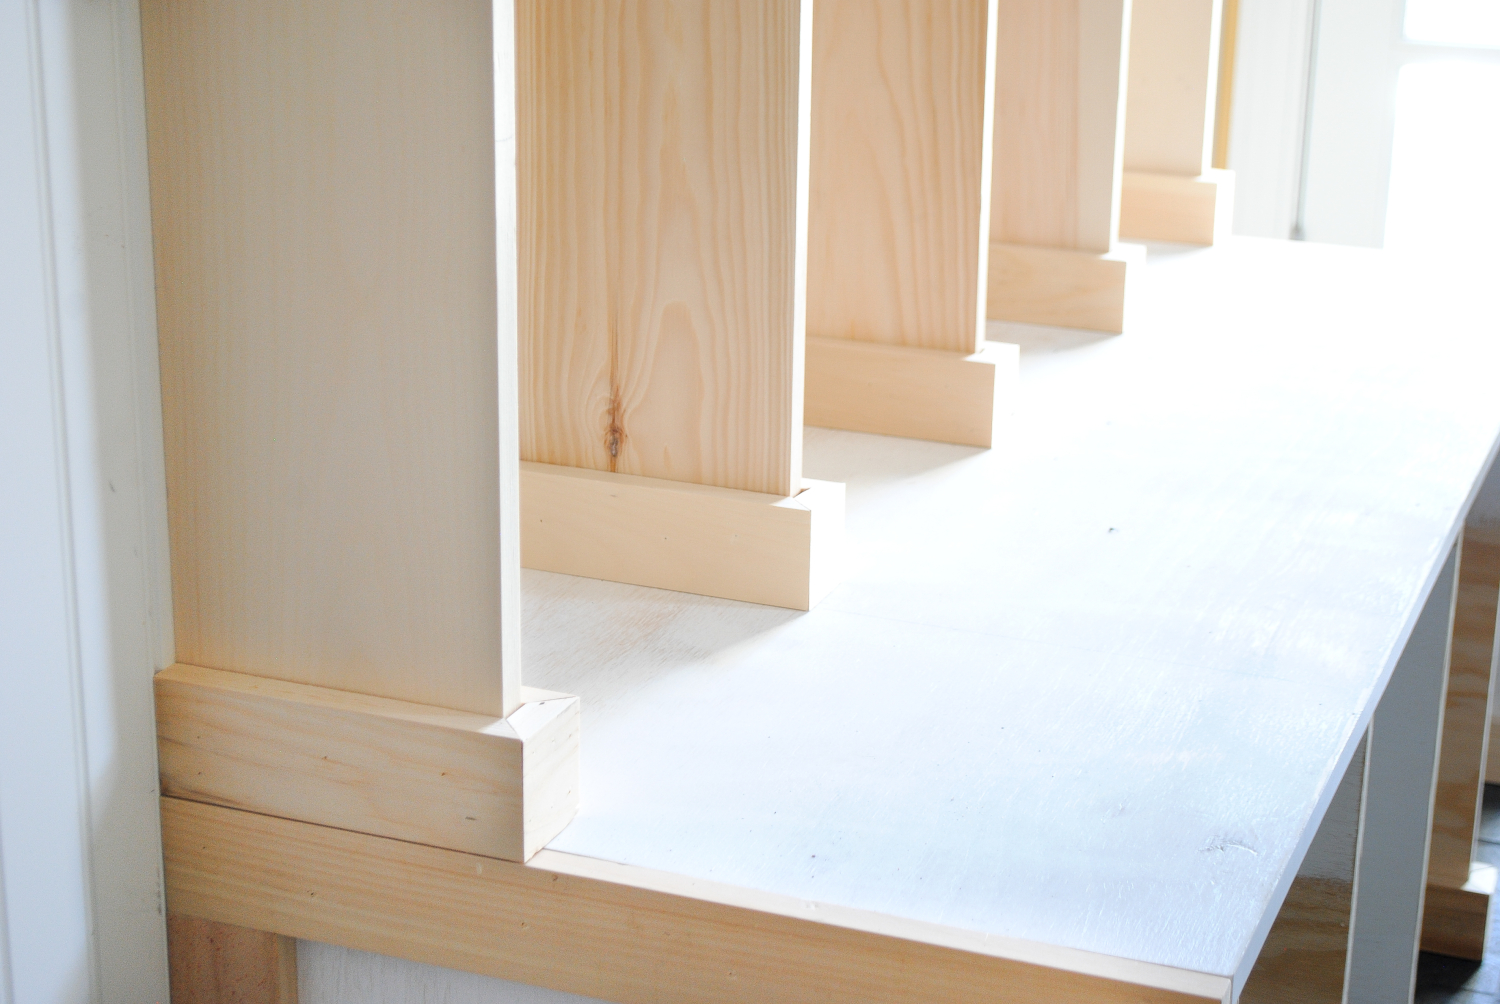 DIY-mudroom-lockers-4-1500x1004.jpg